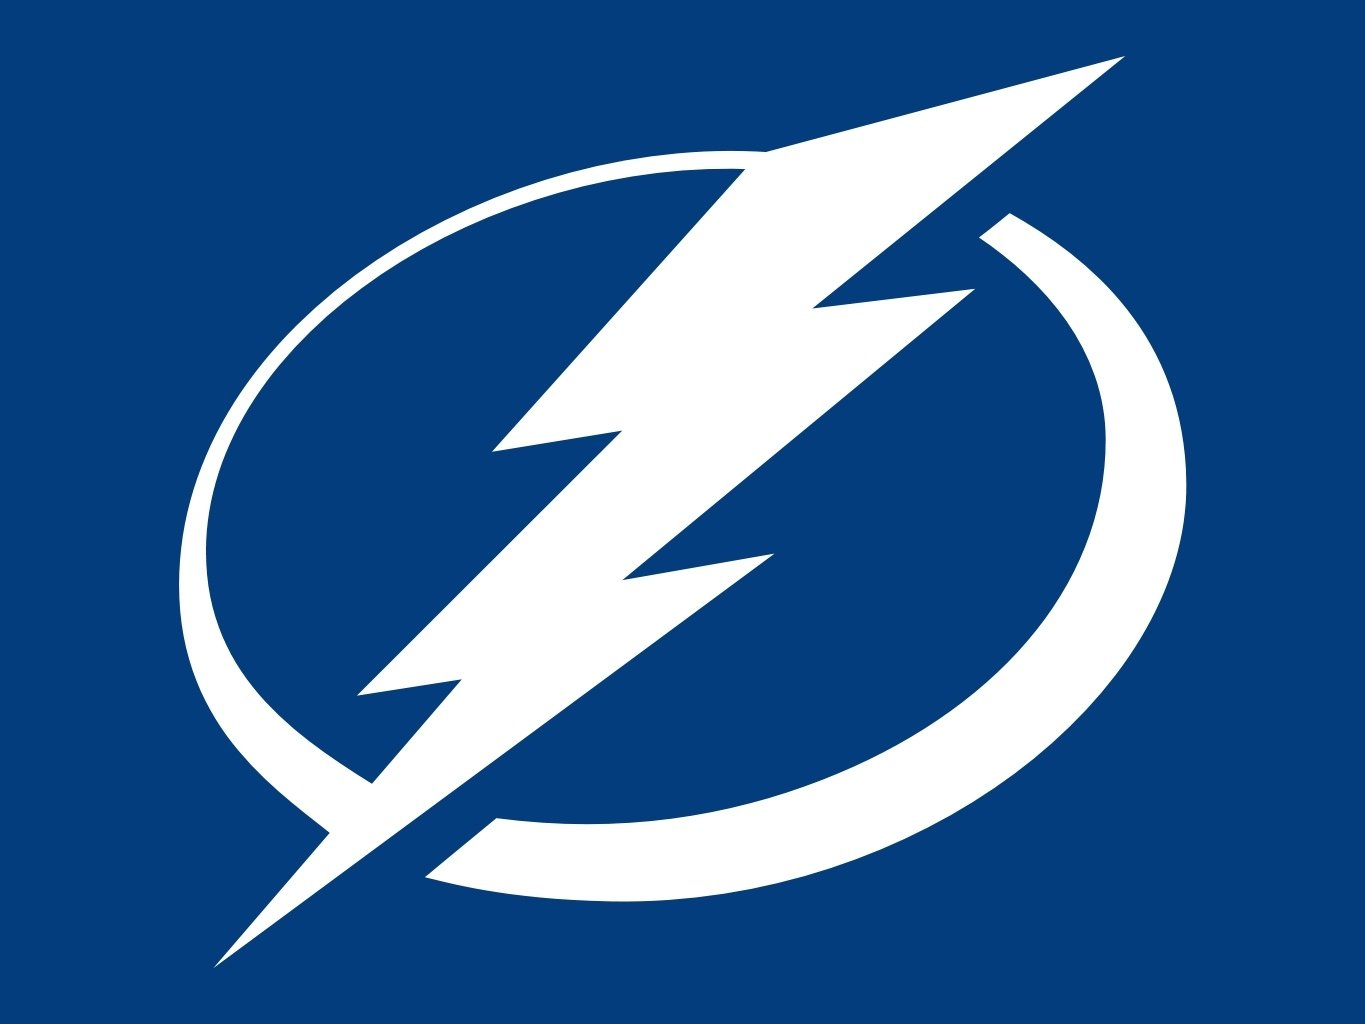 lightning de tampa bay Wallpaper   ForWallpapercom 1365x1024